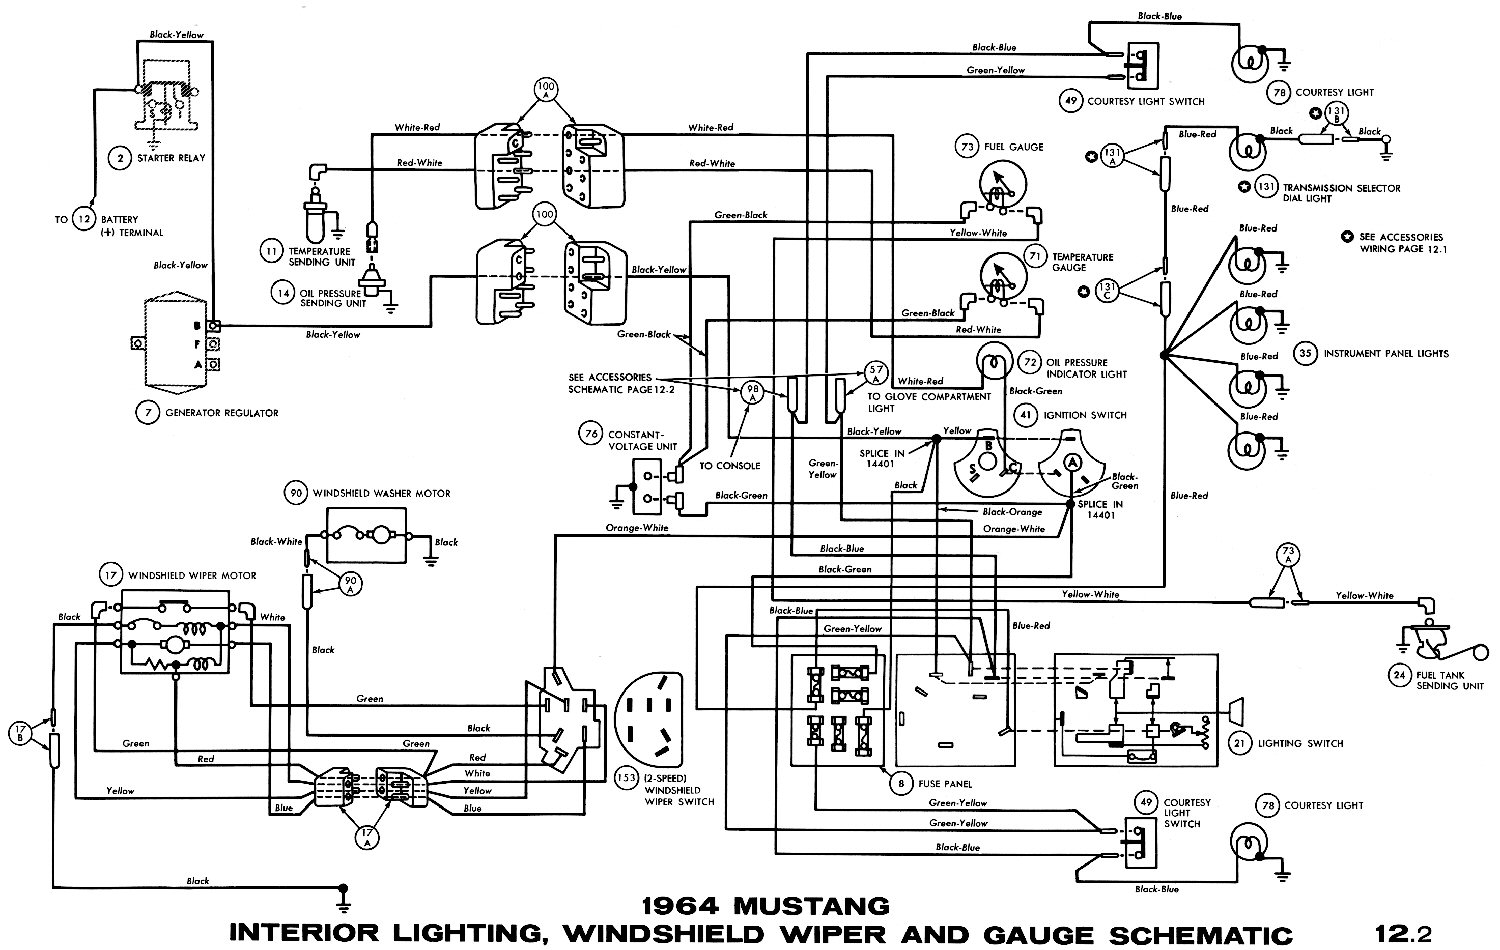 1964k 1964 mustang wiring diagrams average joe restoration 1968 mustang instrument cluster wiring diagram at readyjetset.co